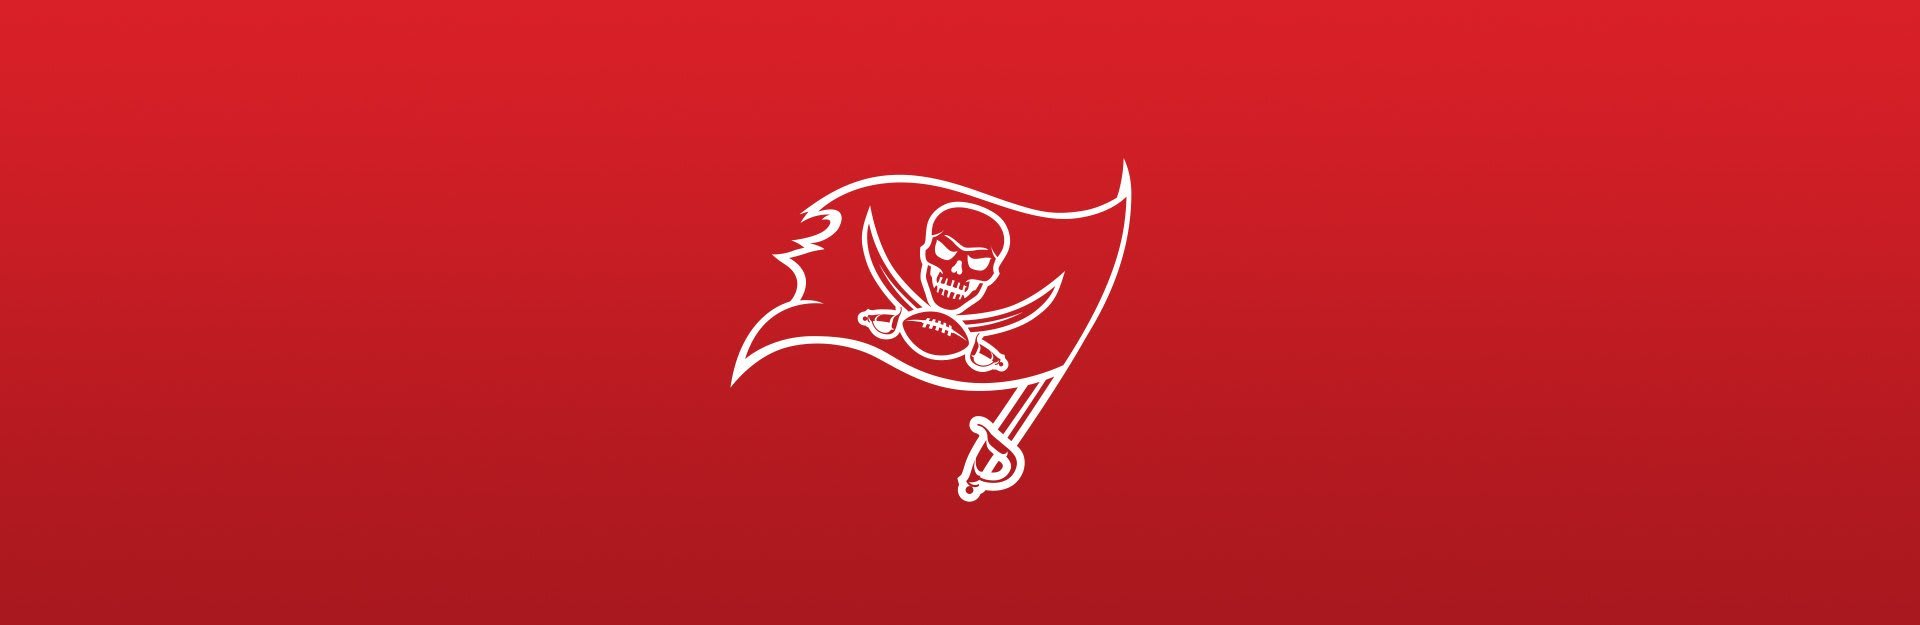 Tampa Bay Buccaneers logo on red background